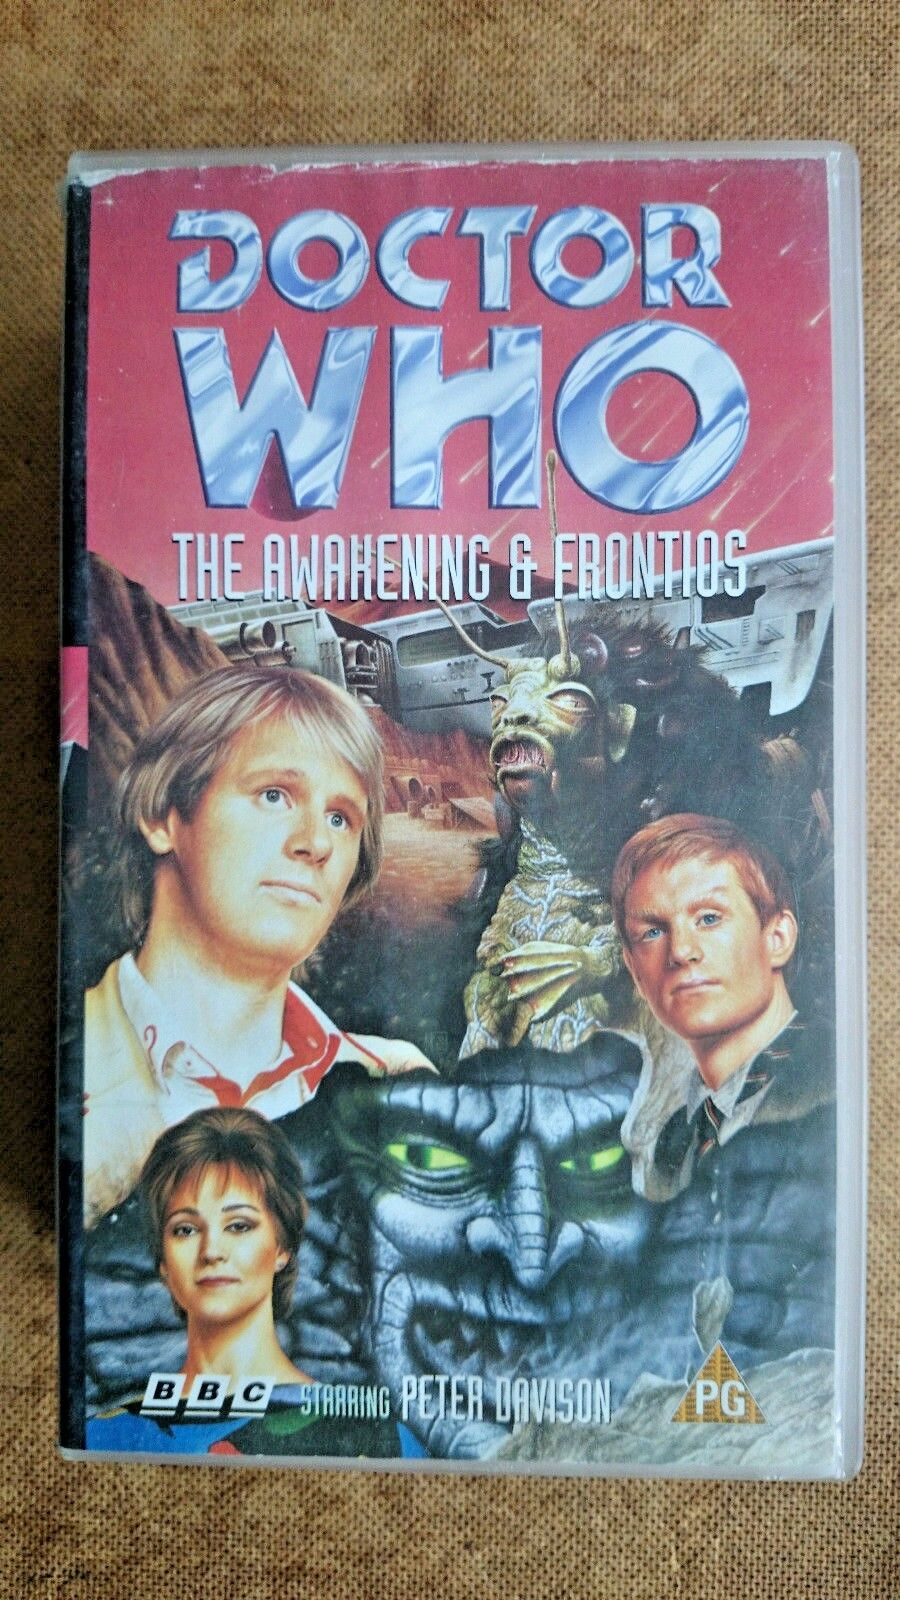 Doctor Who The Awakening / Frontios...Peter Davidson